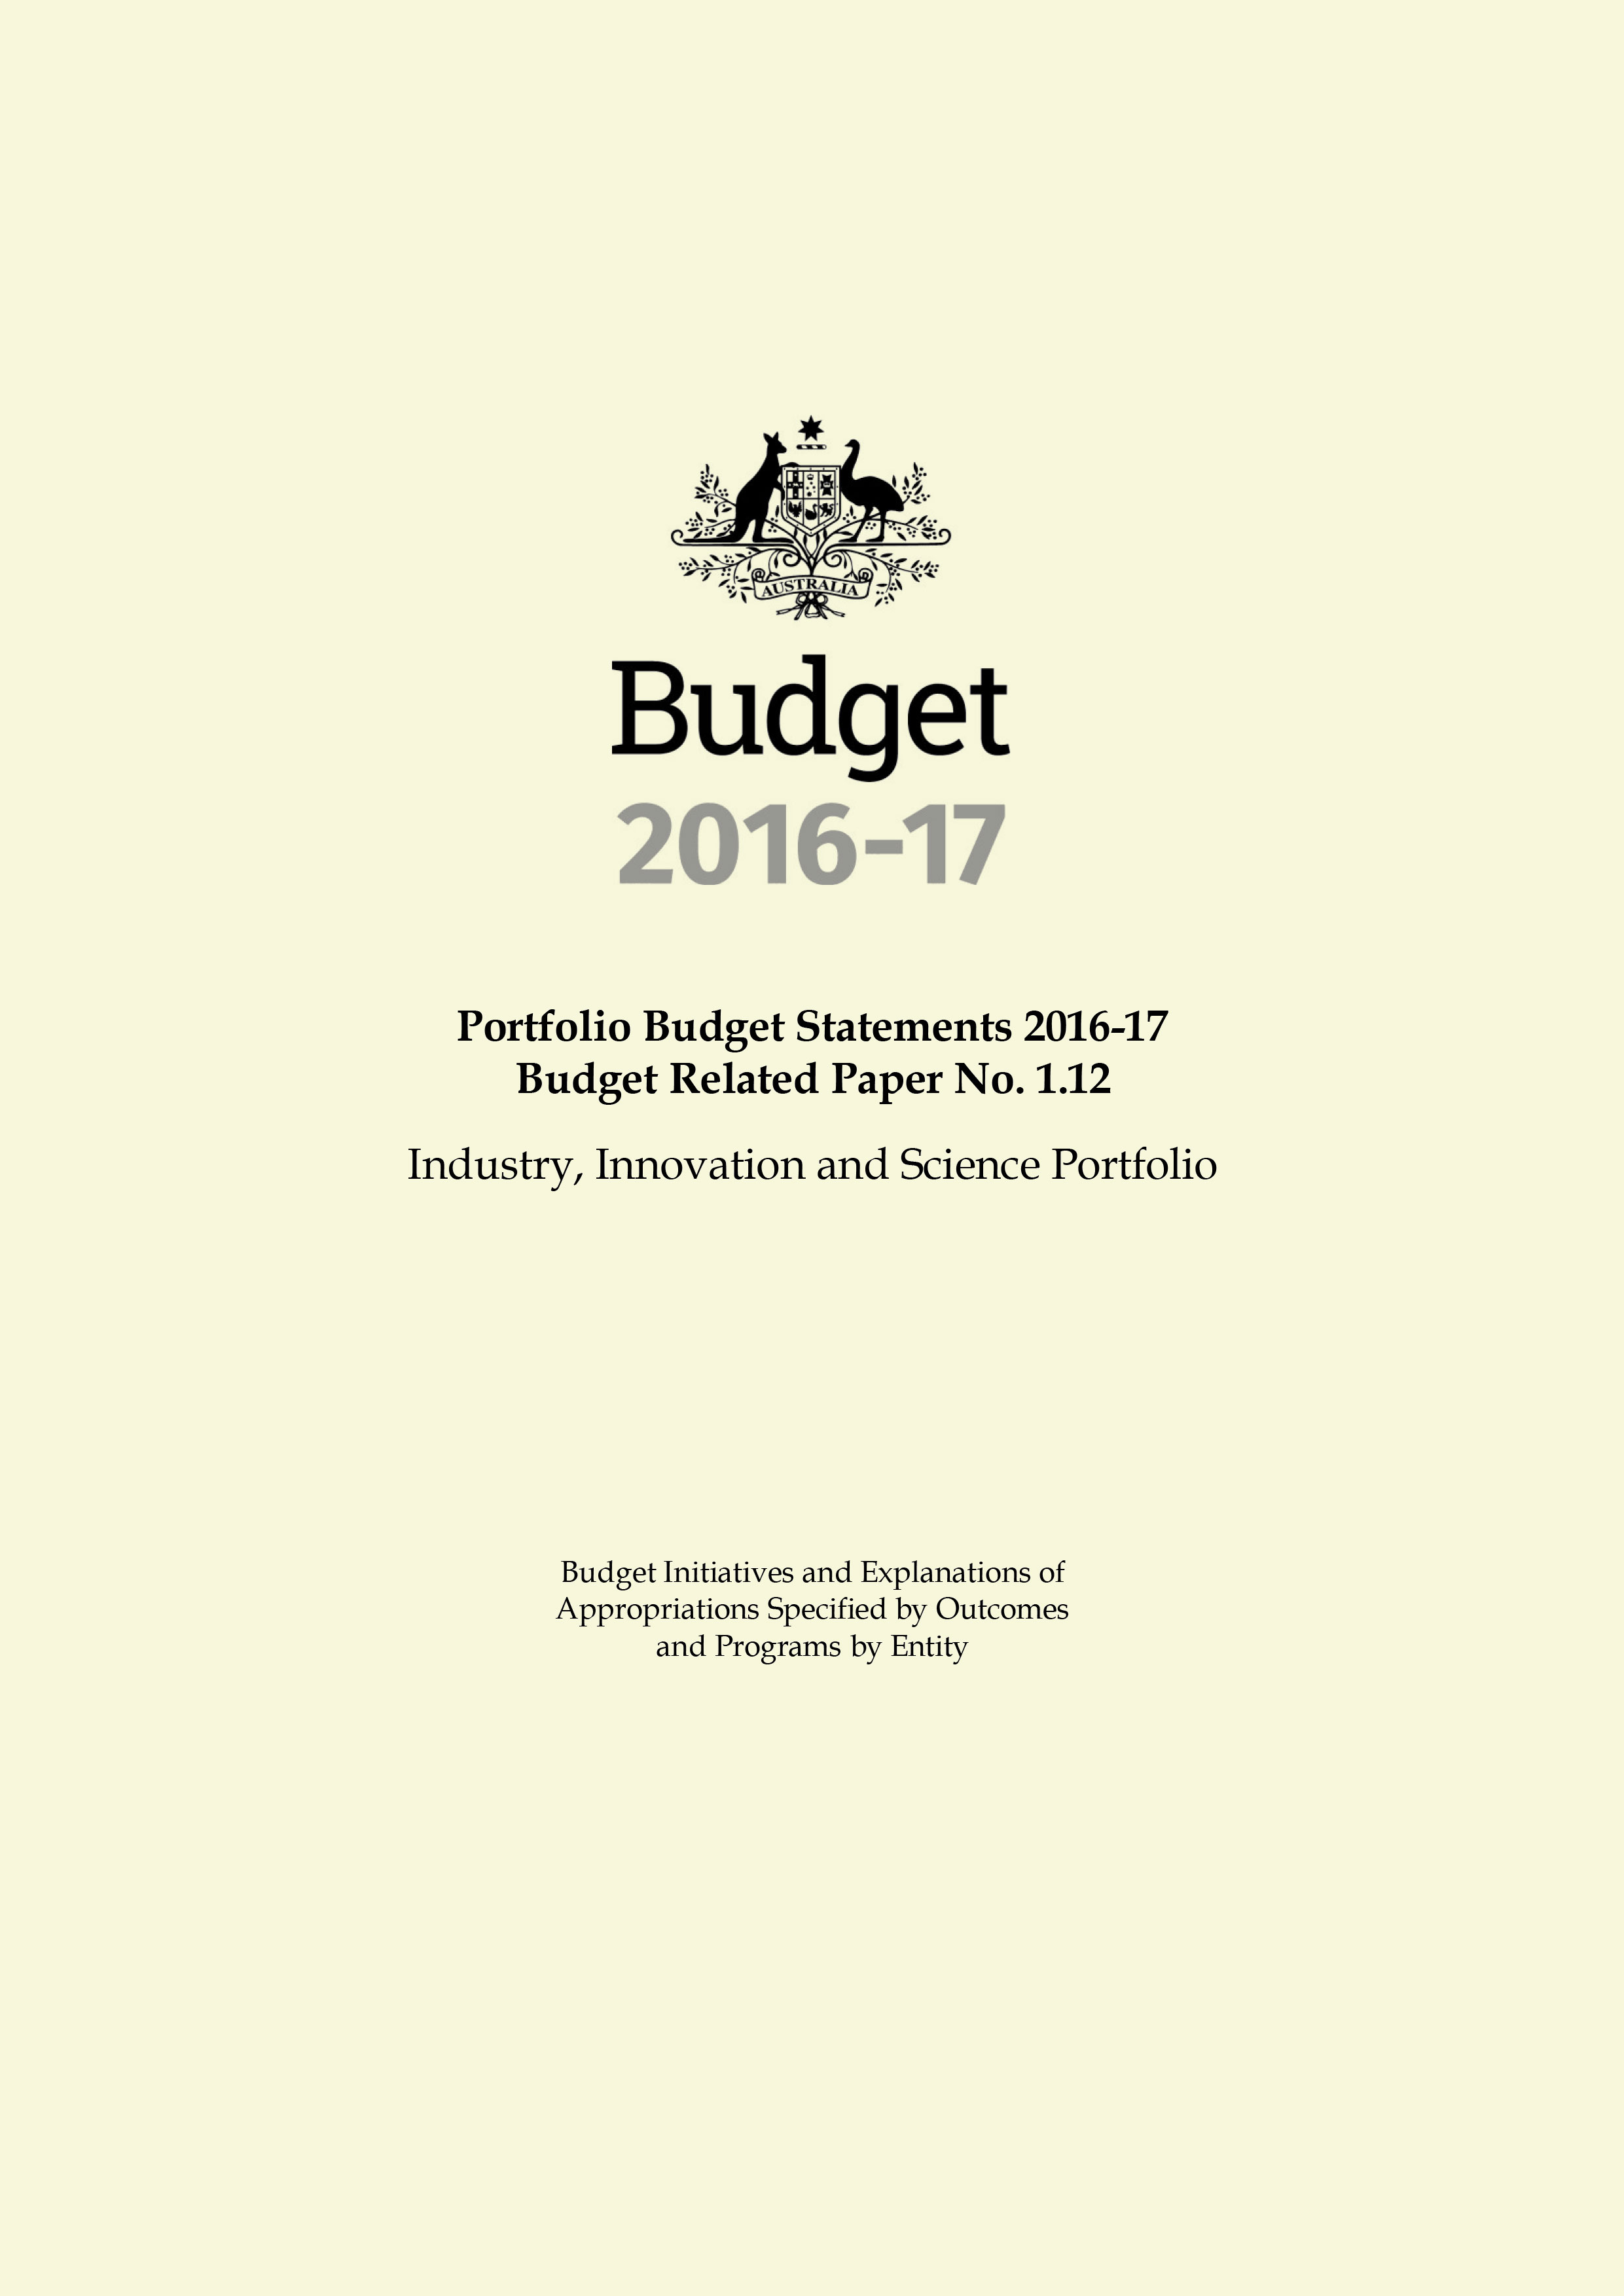 Cover of the Budget related paper No. 12 from Industry, Innovation and Science Portfolio.